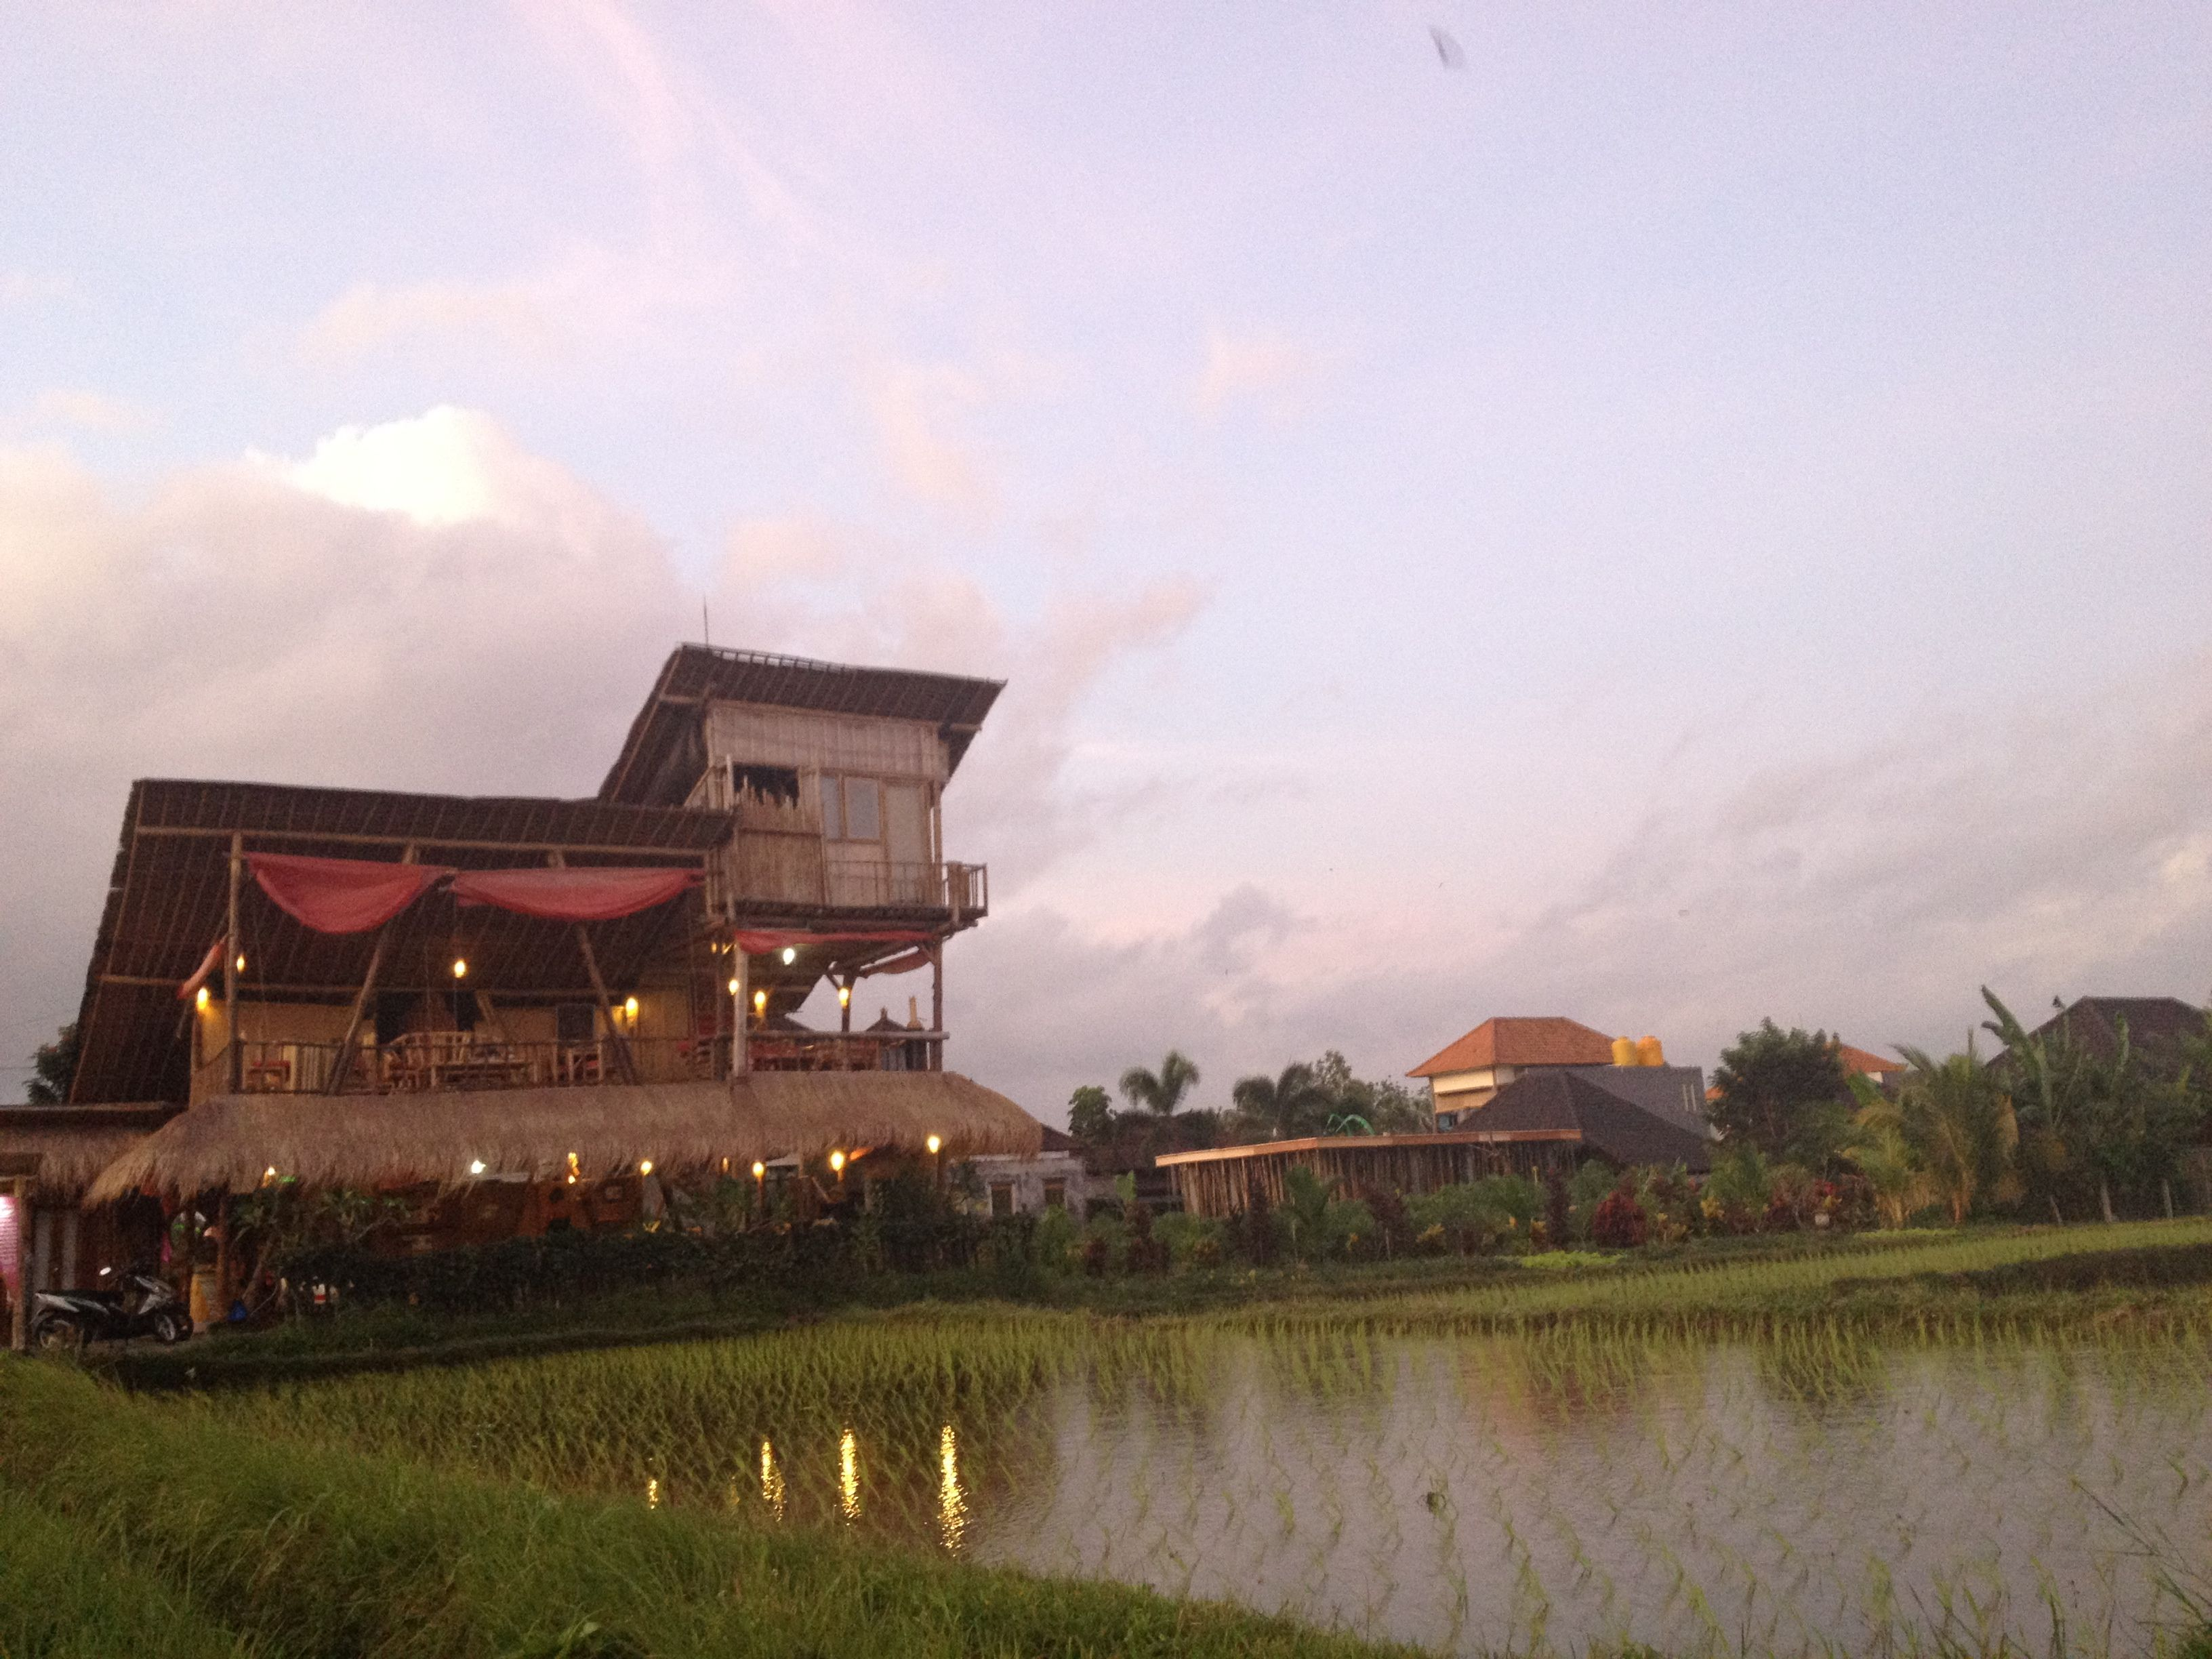 Restaurant in the middle of rice fields near Ubud in Bali